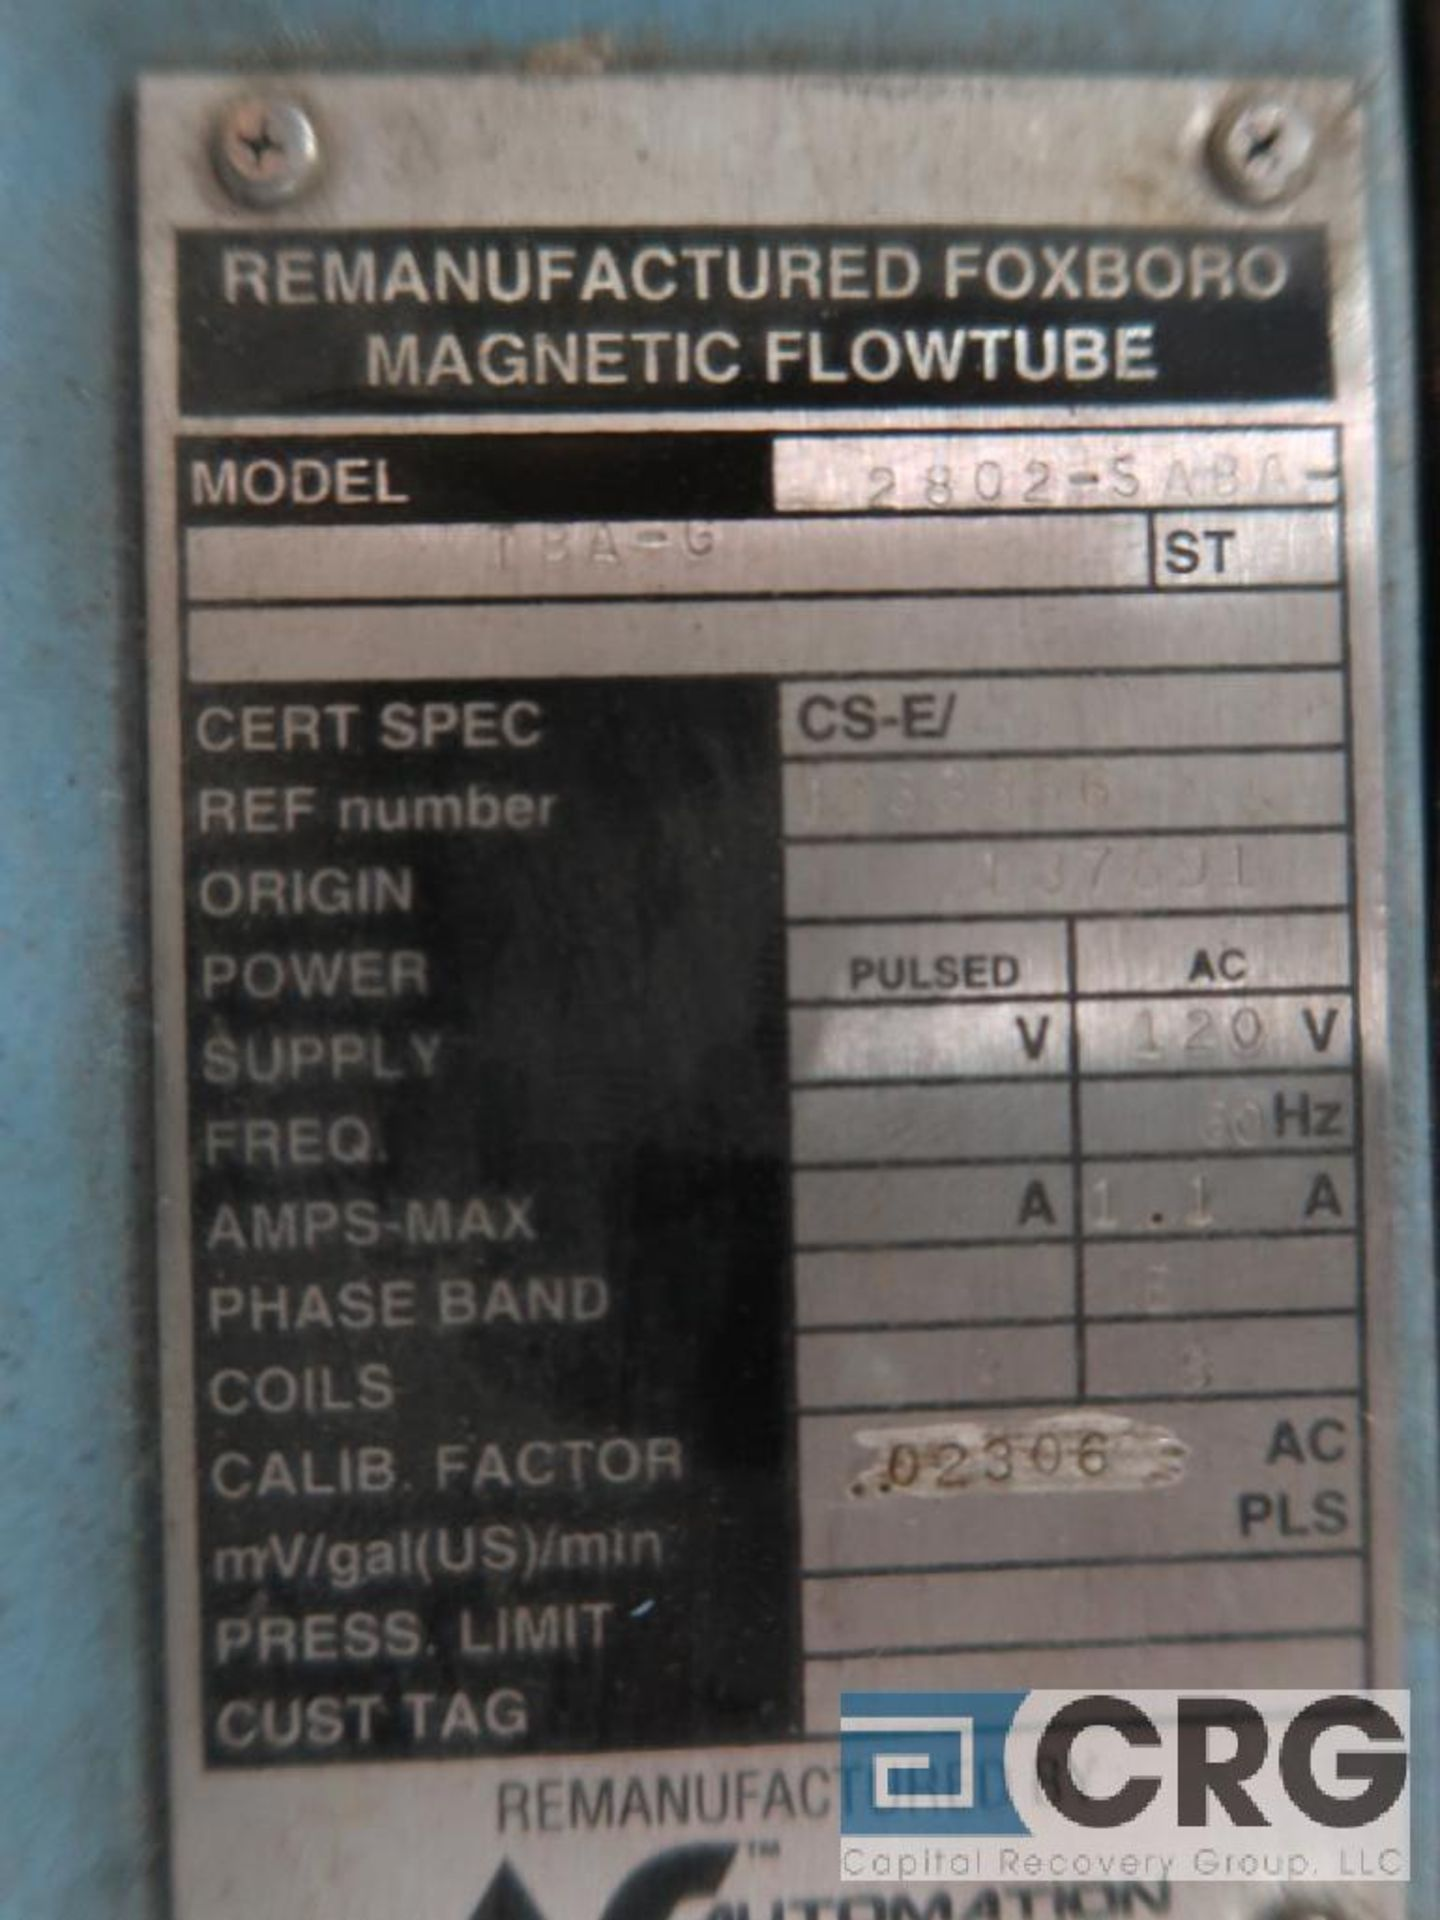 Lot of (5) Foxboro magnetic flow tubes, (2) 1/2 in., (2) 1 in., and (1) 2 in. (Finish Building) - Image 2 of 2